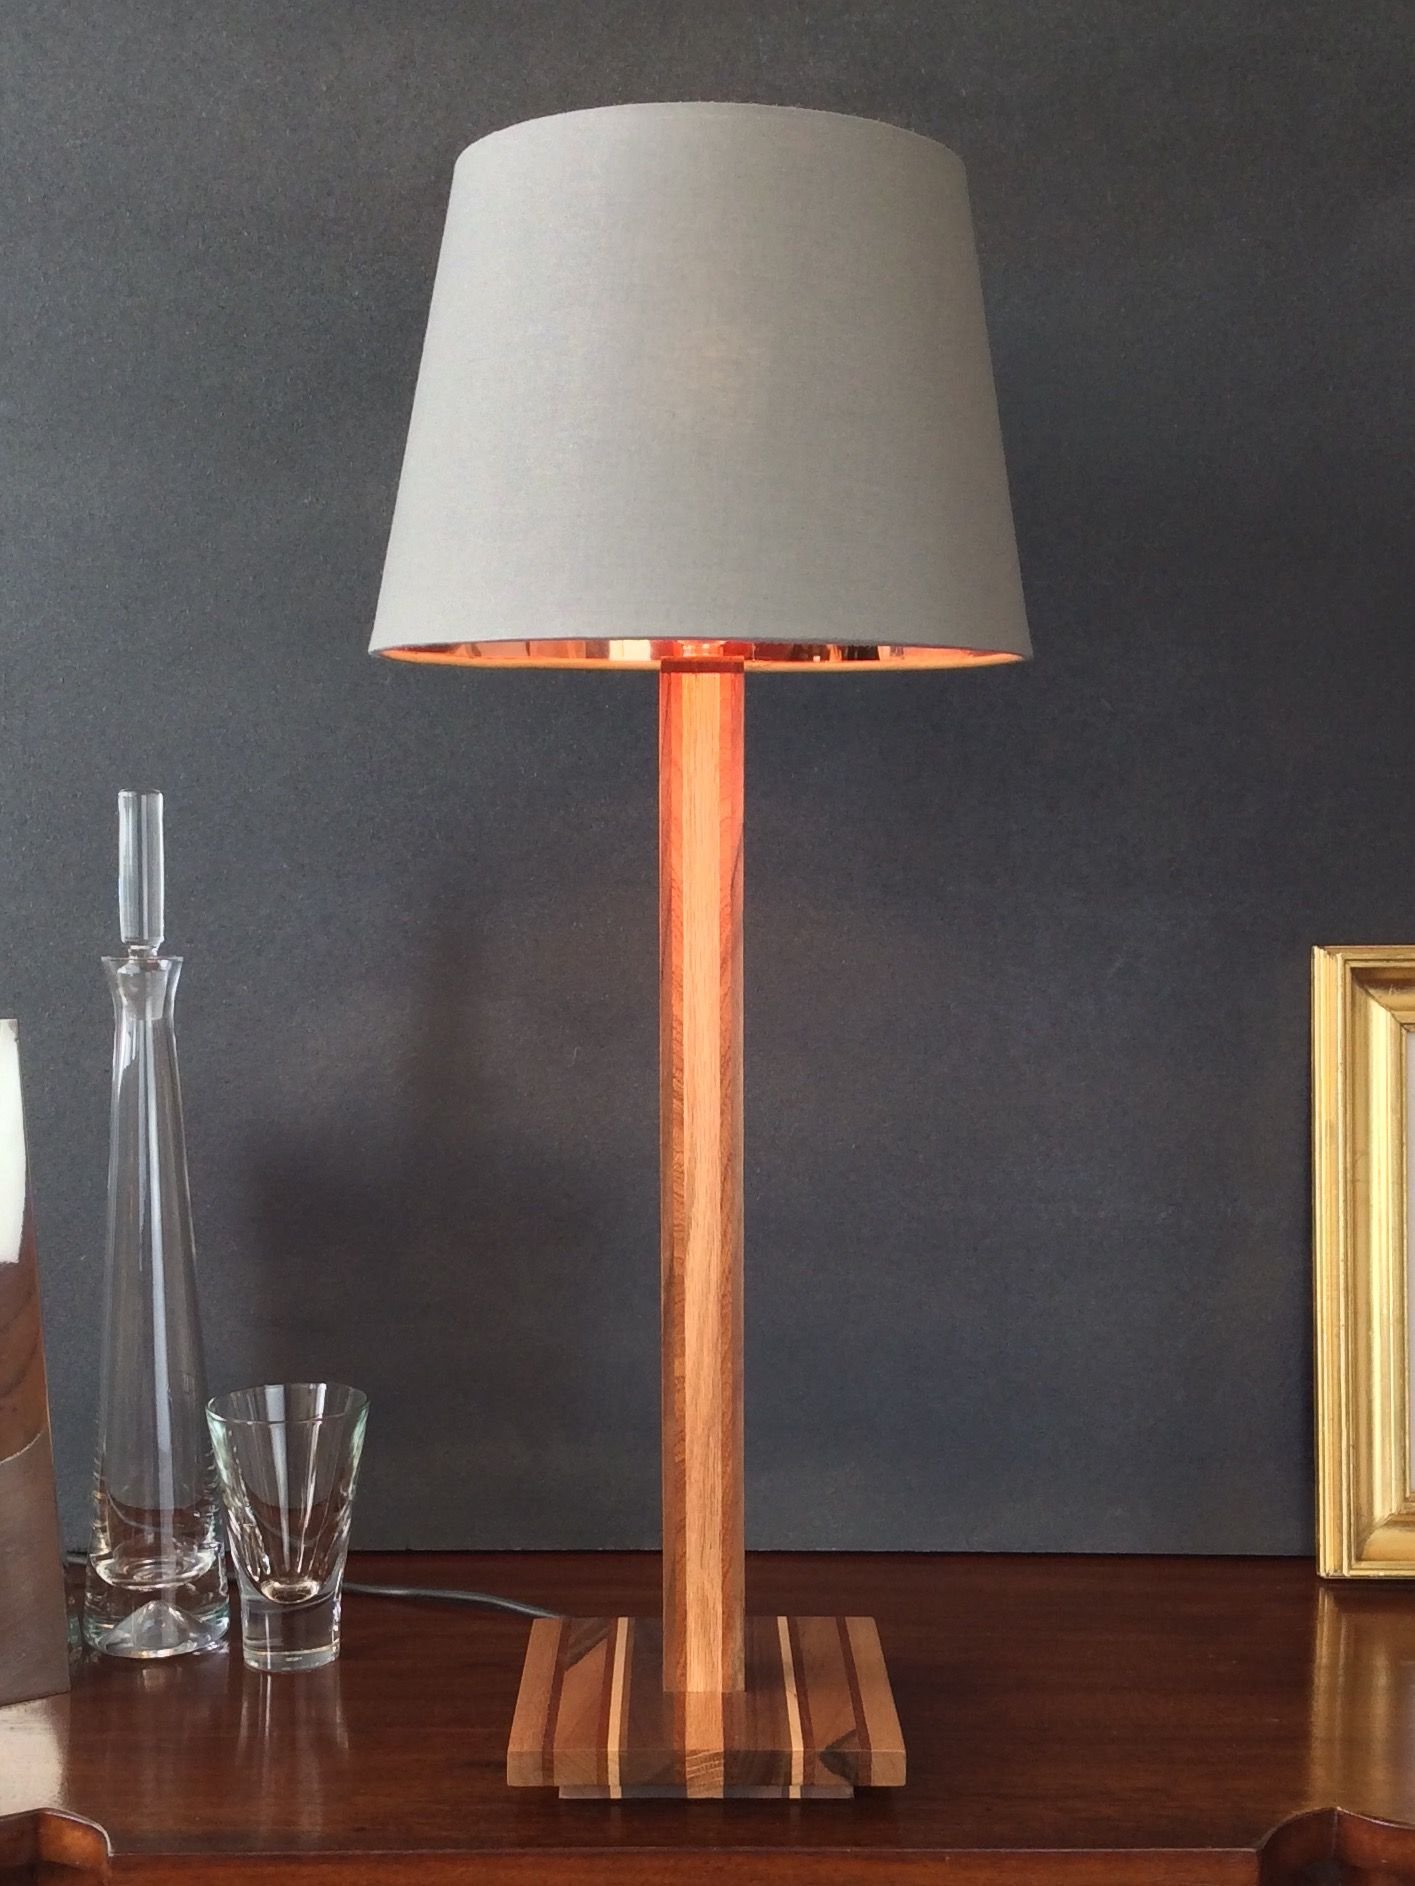 Club table lamp from pglampmaker tablelamp lighting walnut oak club table lamp from pglampmaker tablelamp lighting walnut oak maple mahogany desk wood wooden geotapseo Choice Image